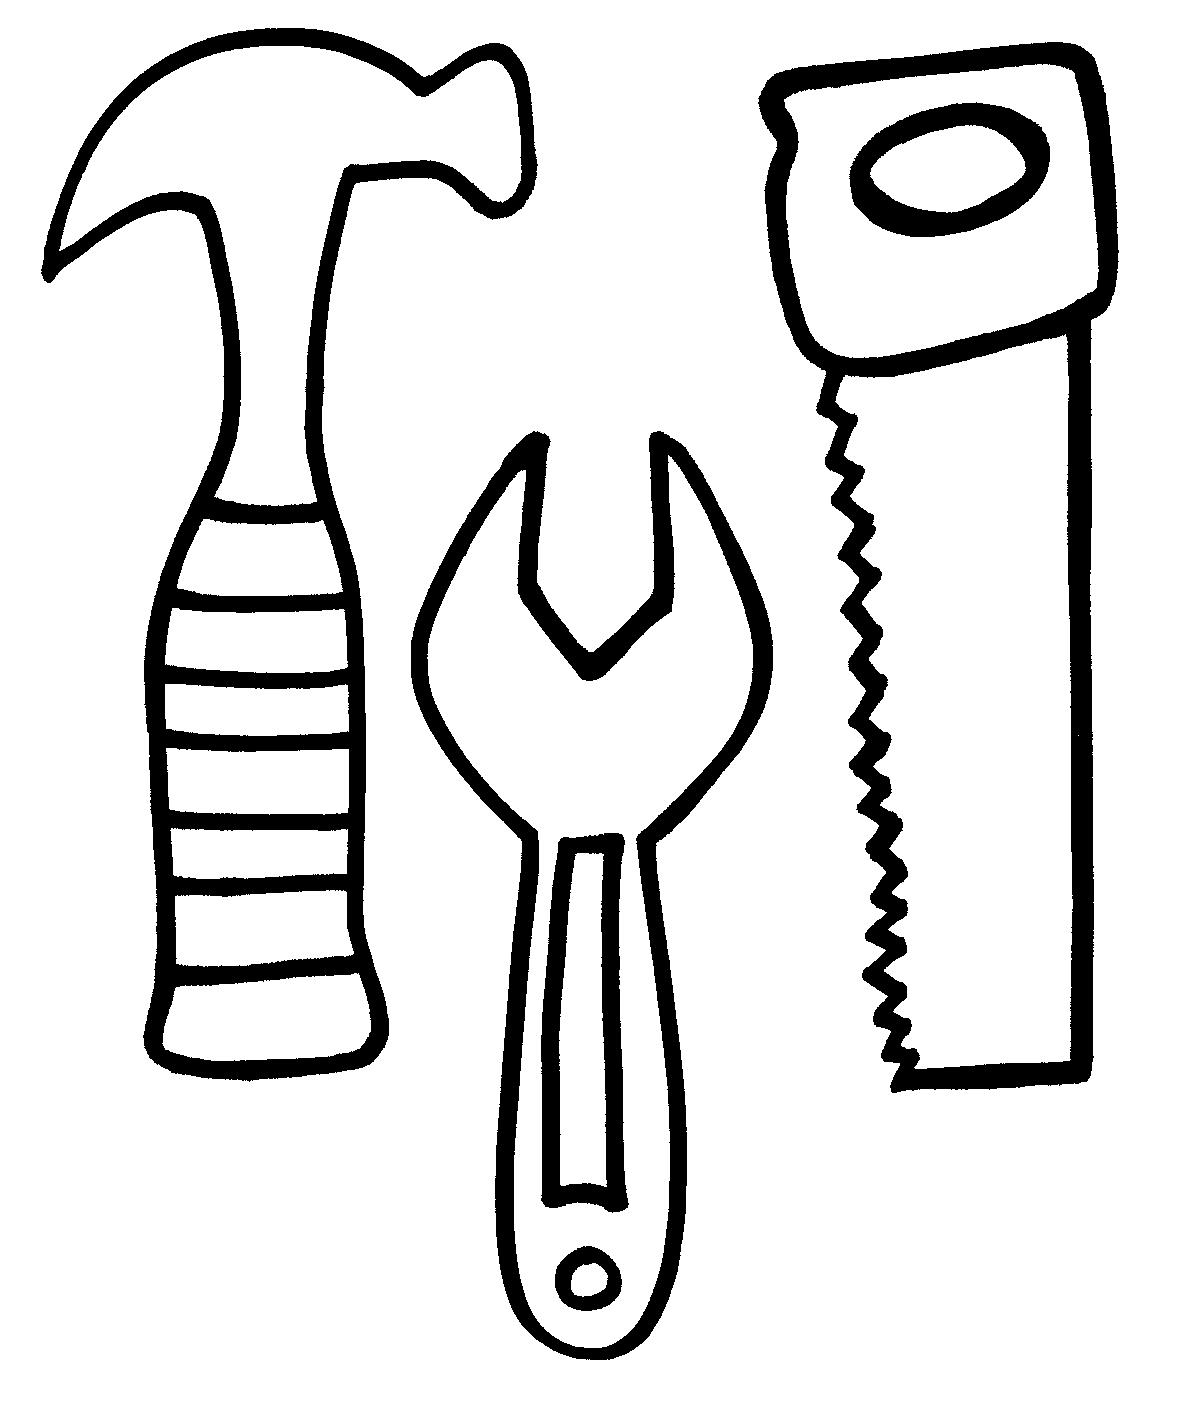 Tool Coloring Pages To Download And Print For Free